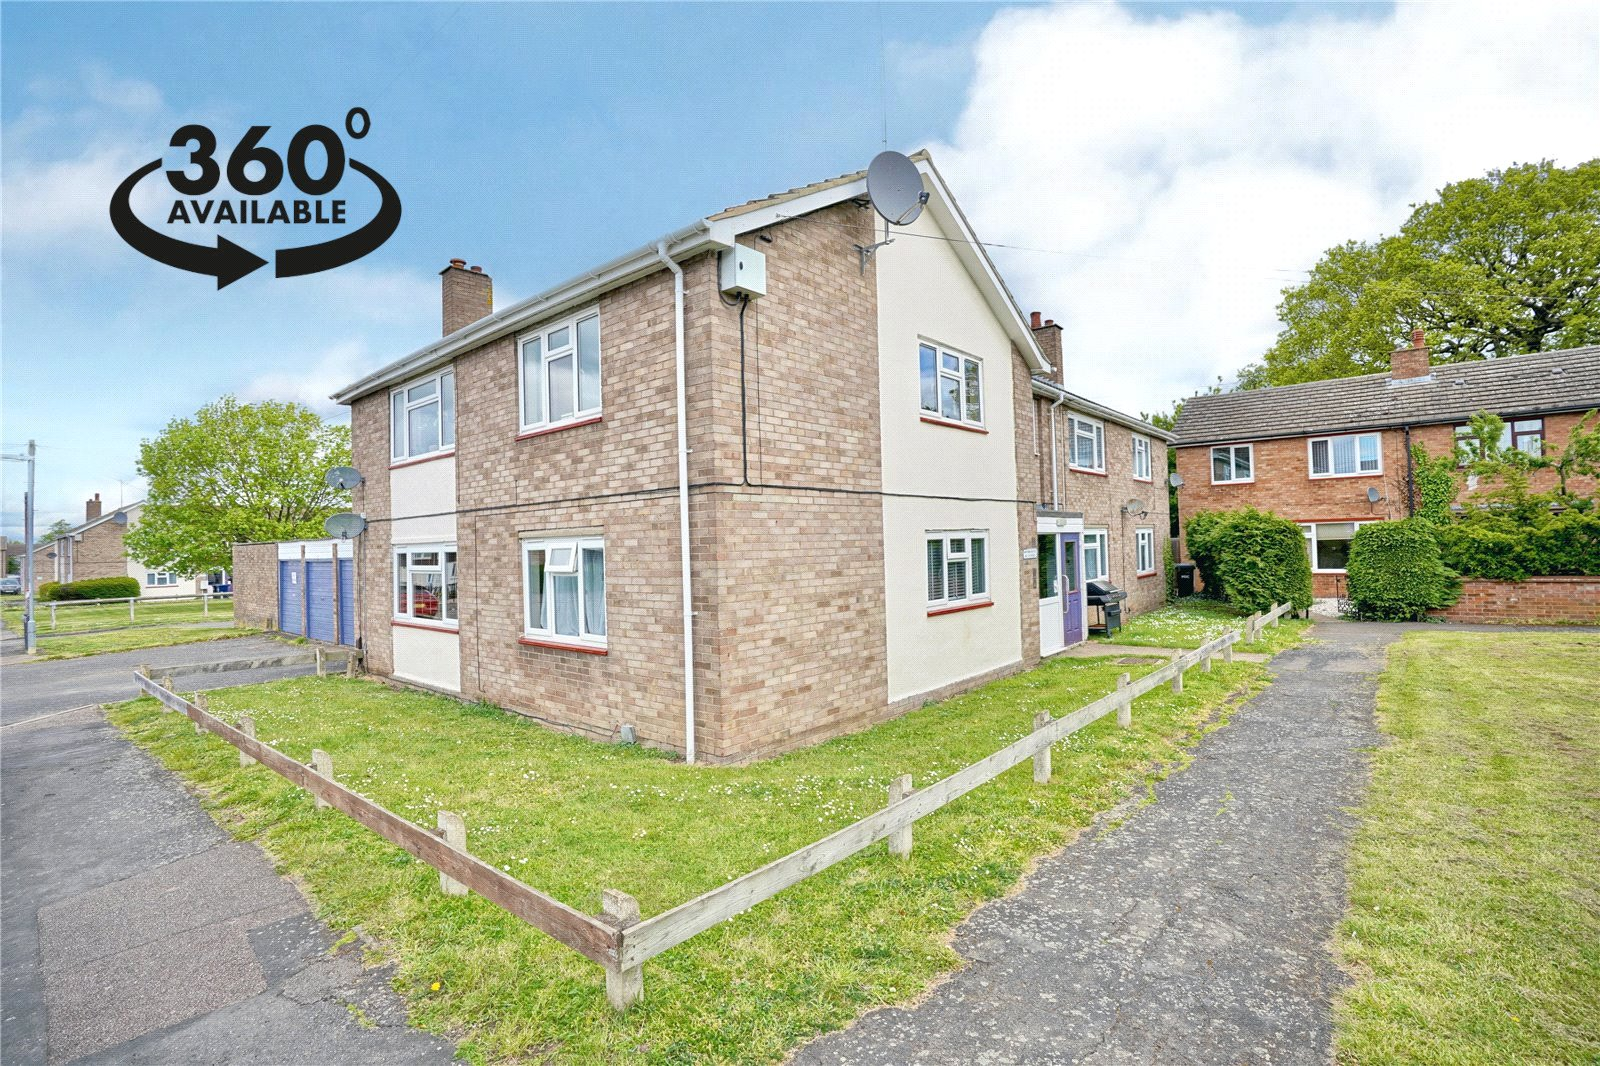 2 bed apartment for sale in Wintringham Road, St. Neots, PE19